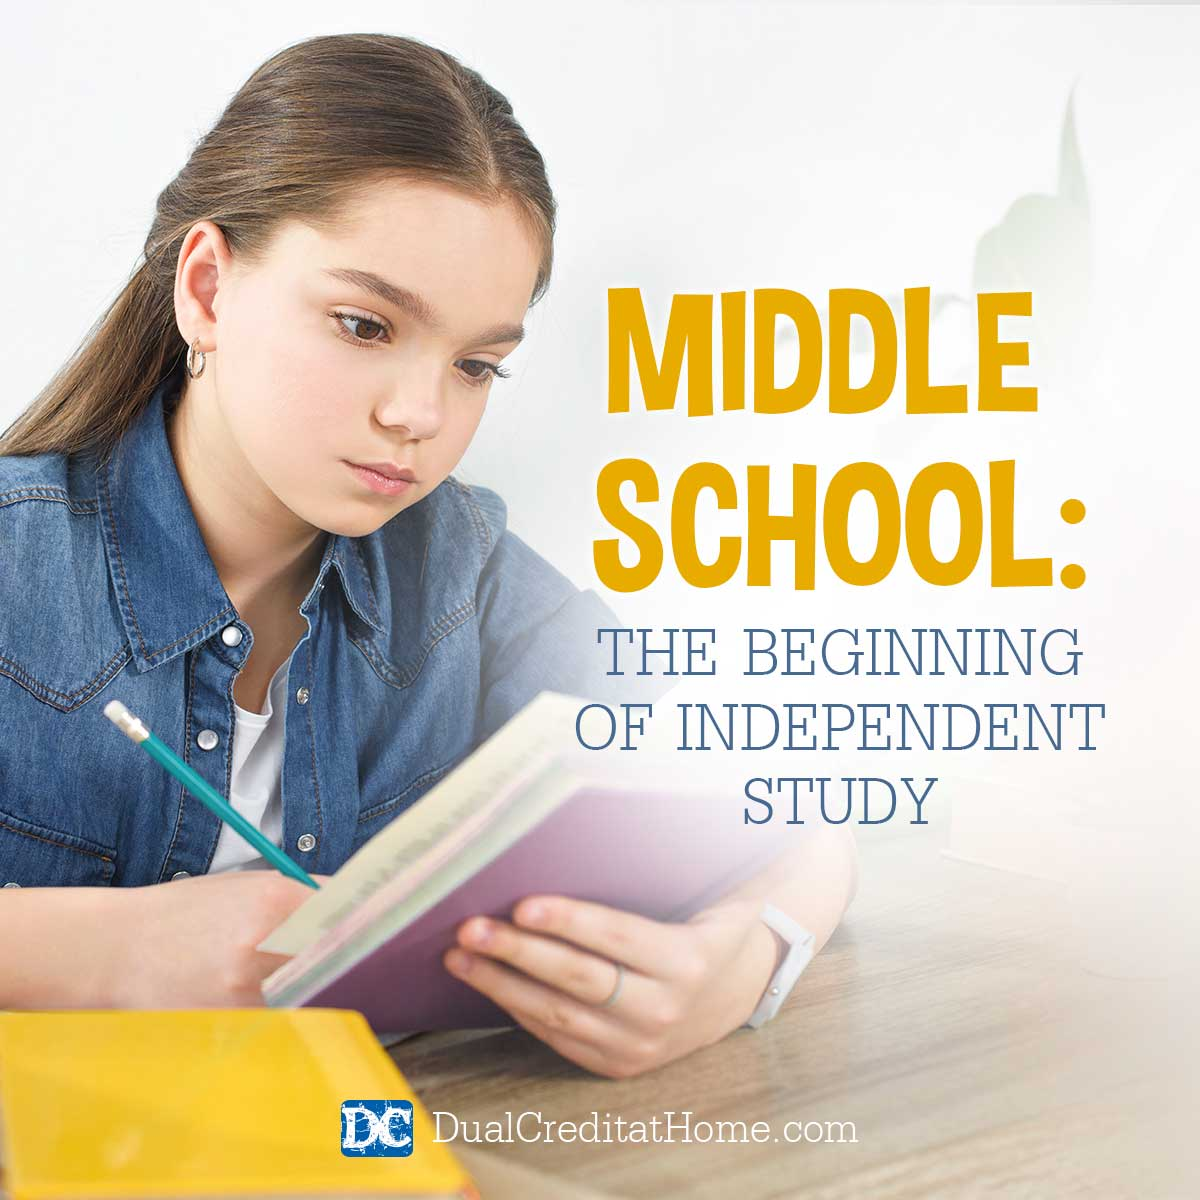 Middle School: The Beginning of Independent Study